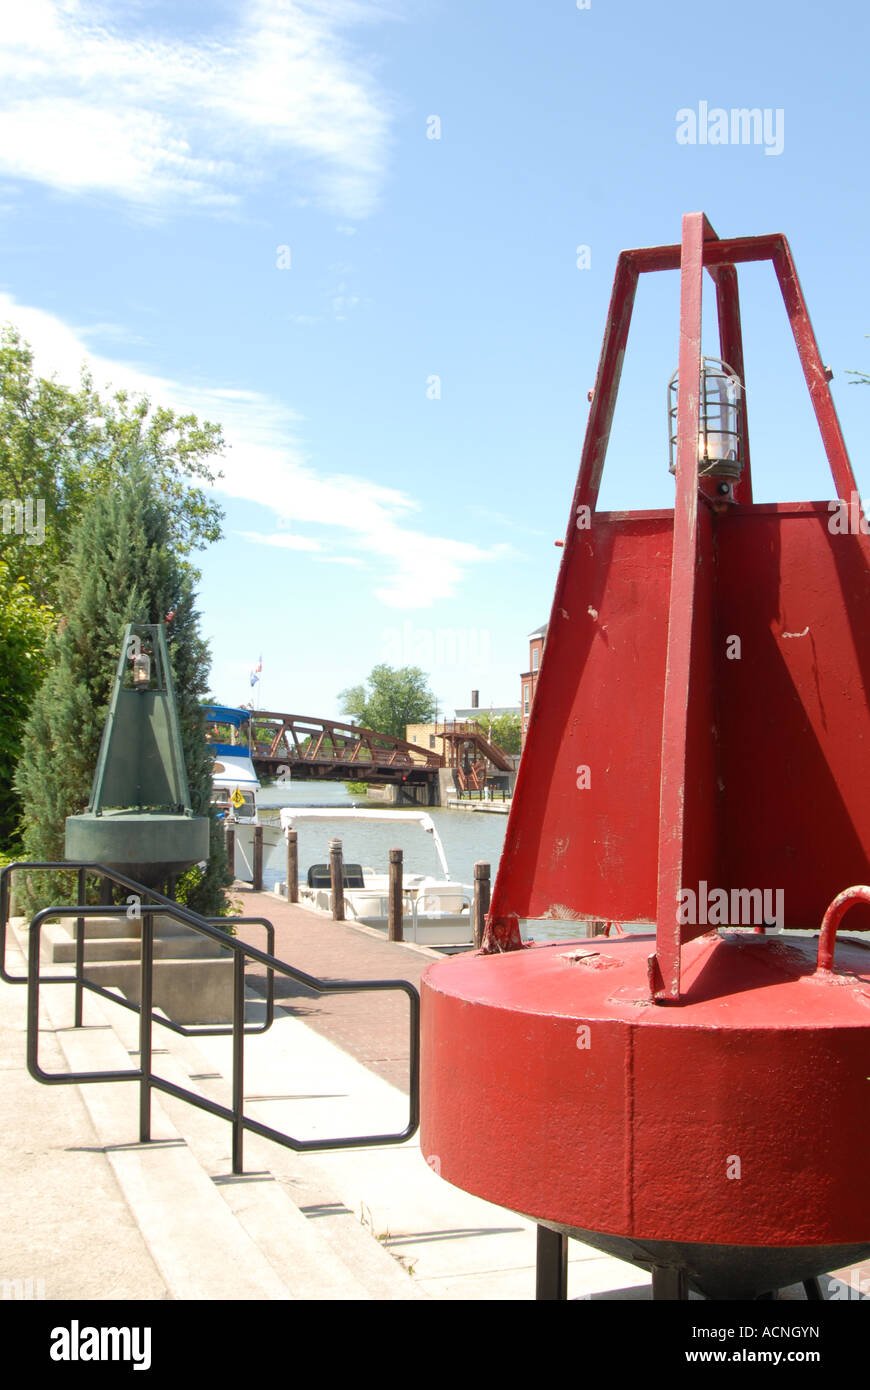 buoy at fairport erie canal landing - Stock Image